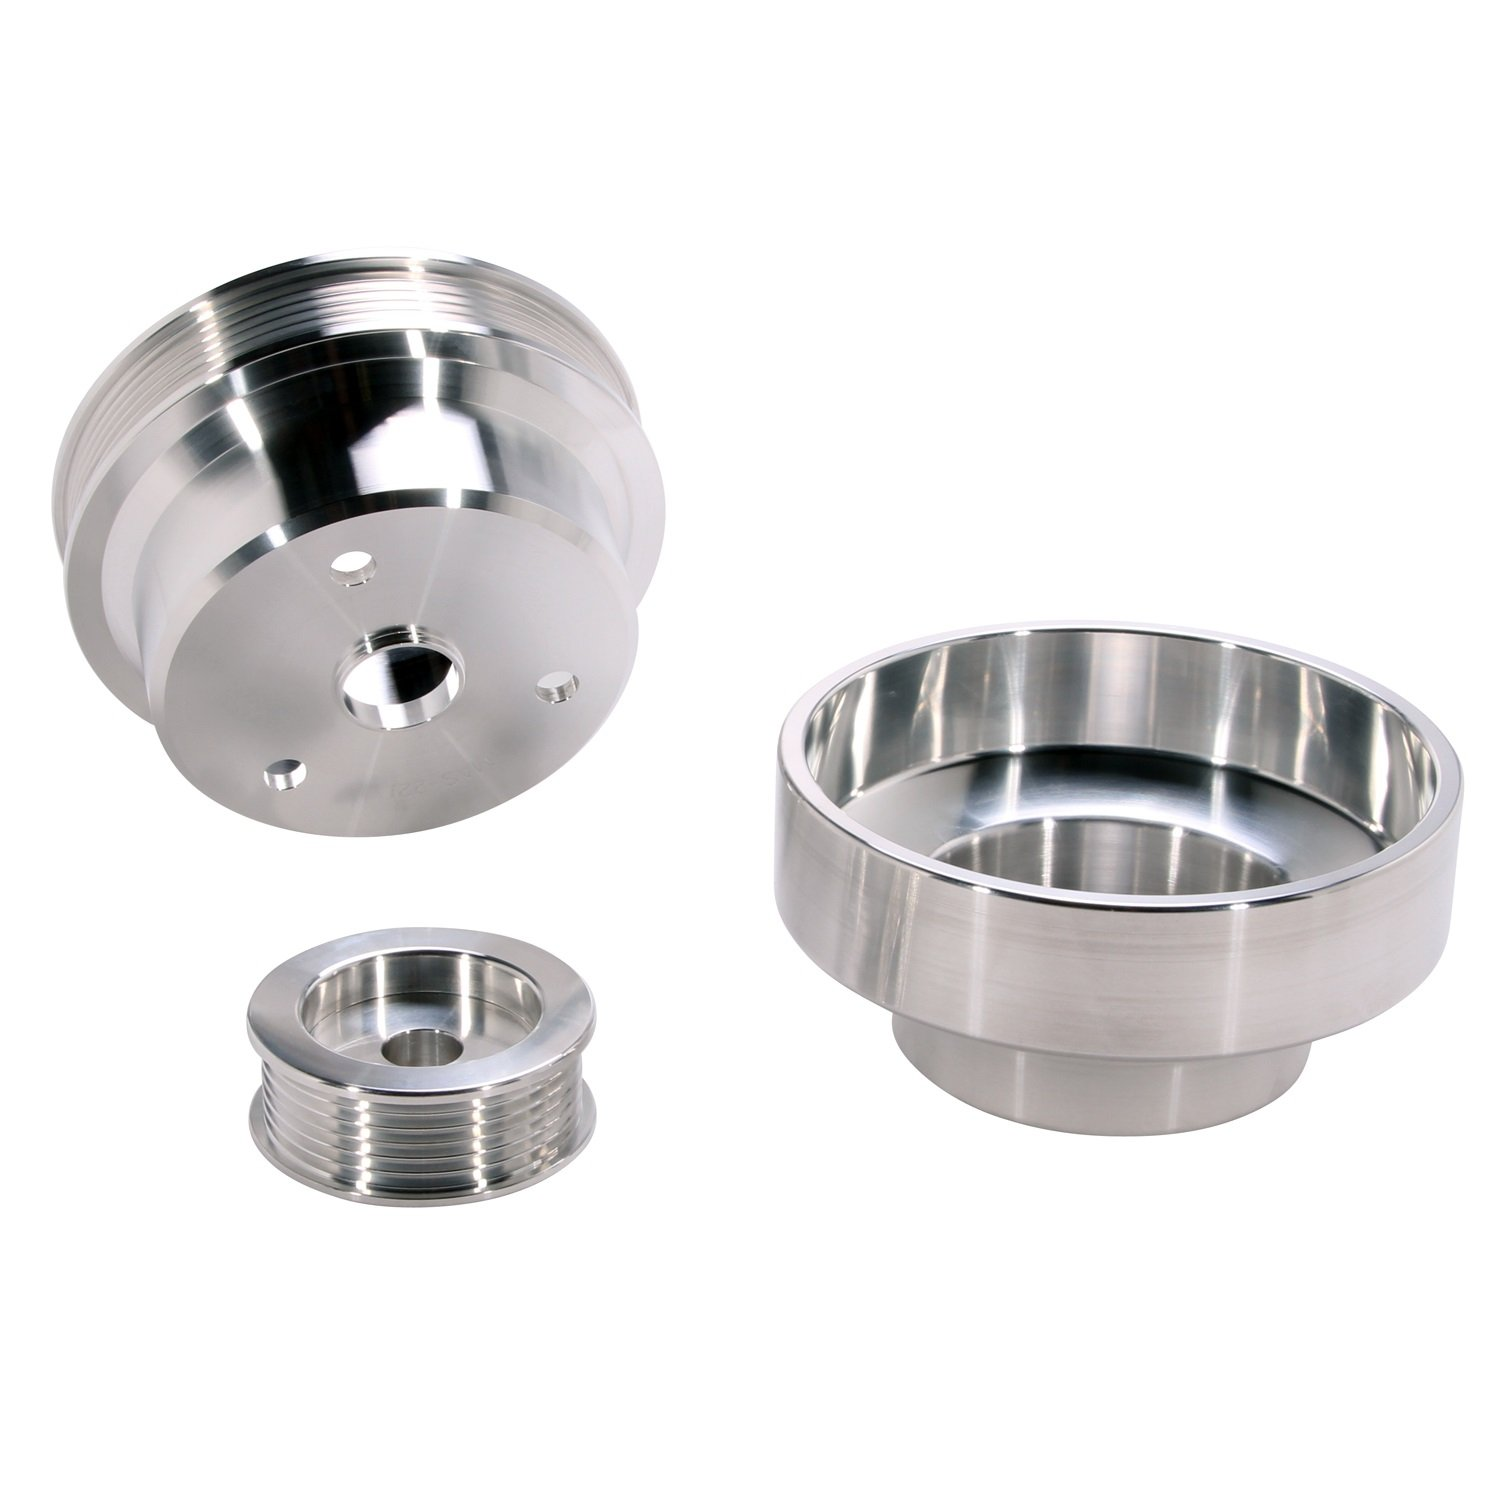 BBK 1603 Underdrive Pulley Kit for GM Truck 4.3/5.0/5.7L - 3 Piece CNC Machined Aluminum by BBK Performance (Image #1)